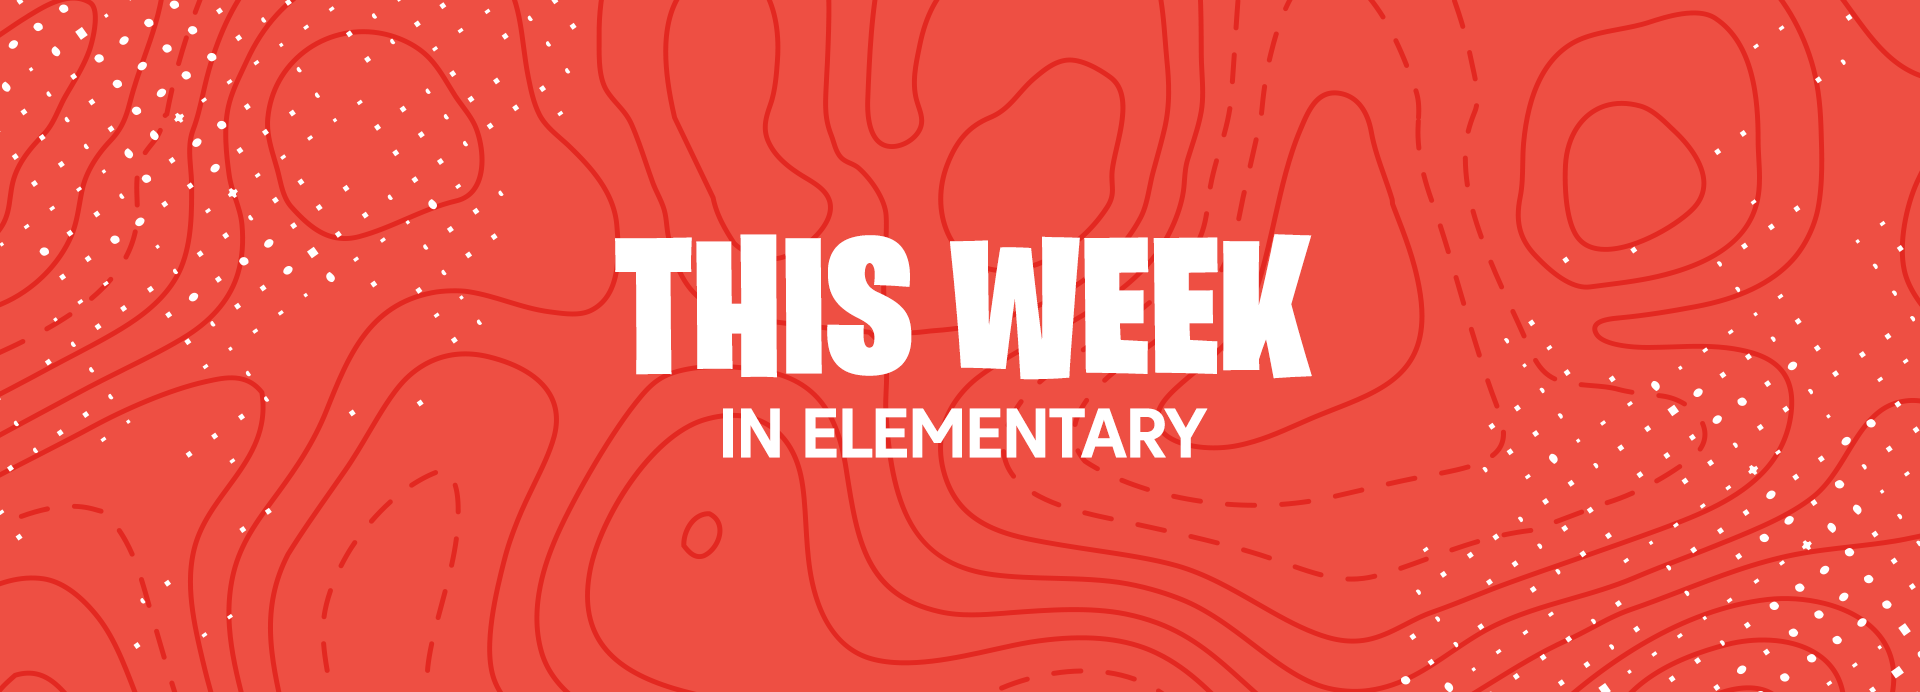 KOTM This Week in Elementary